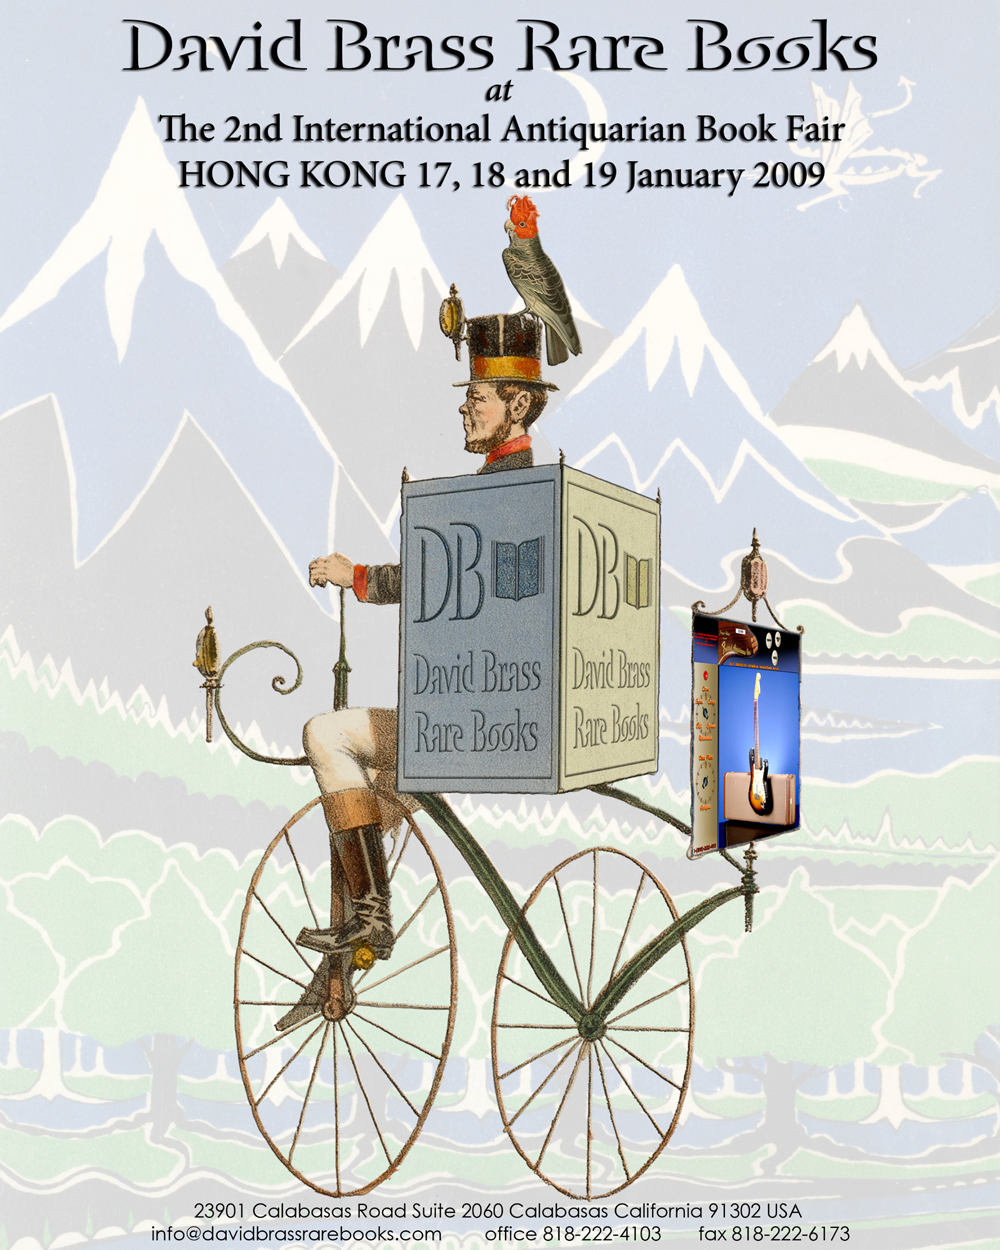 2009 Hong Kong Antiquarian Book Fair